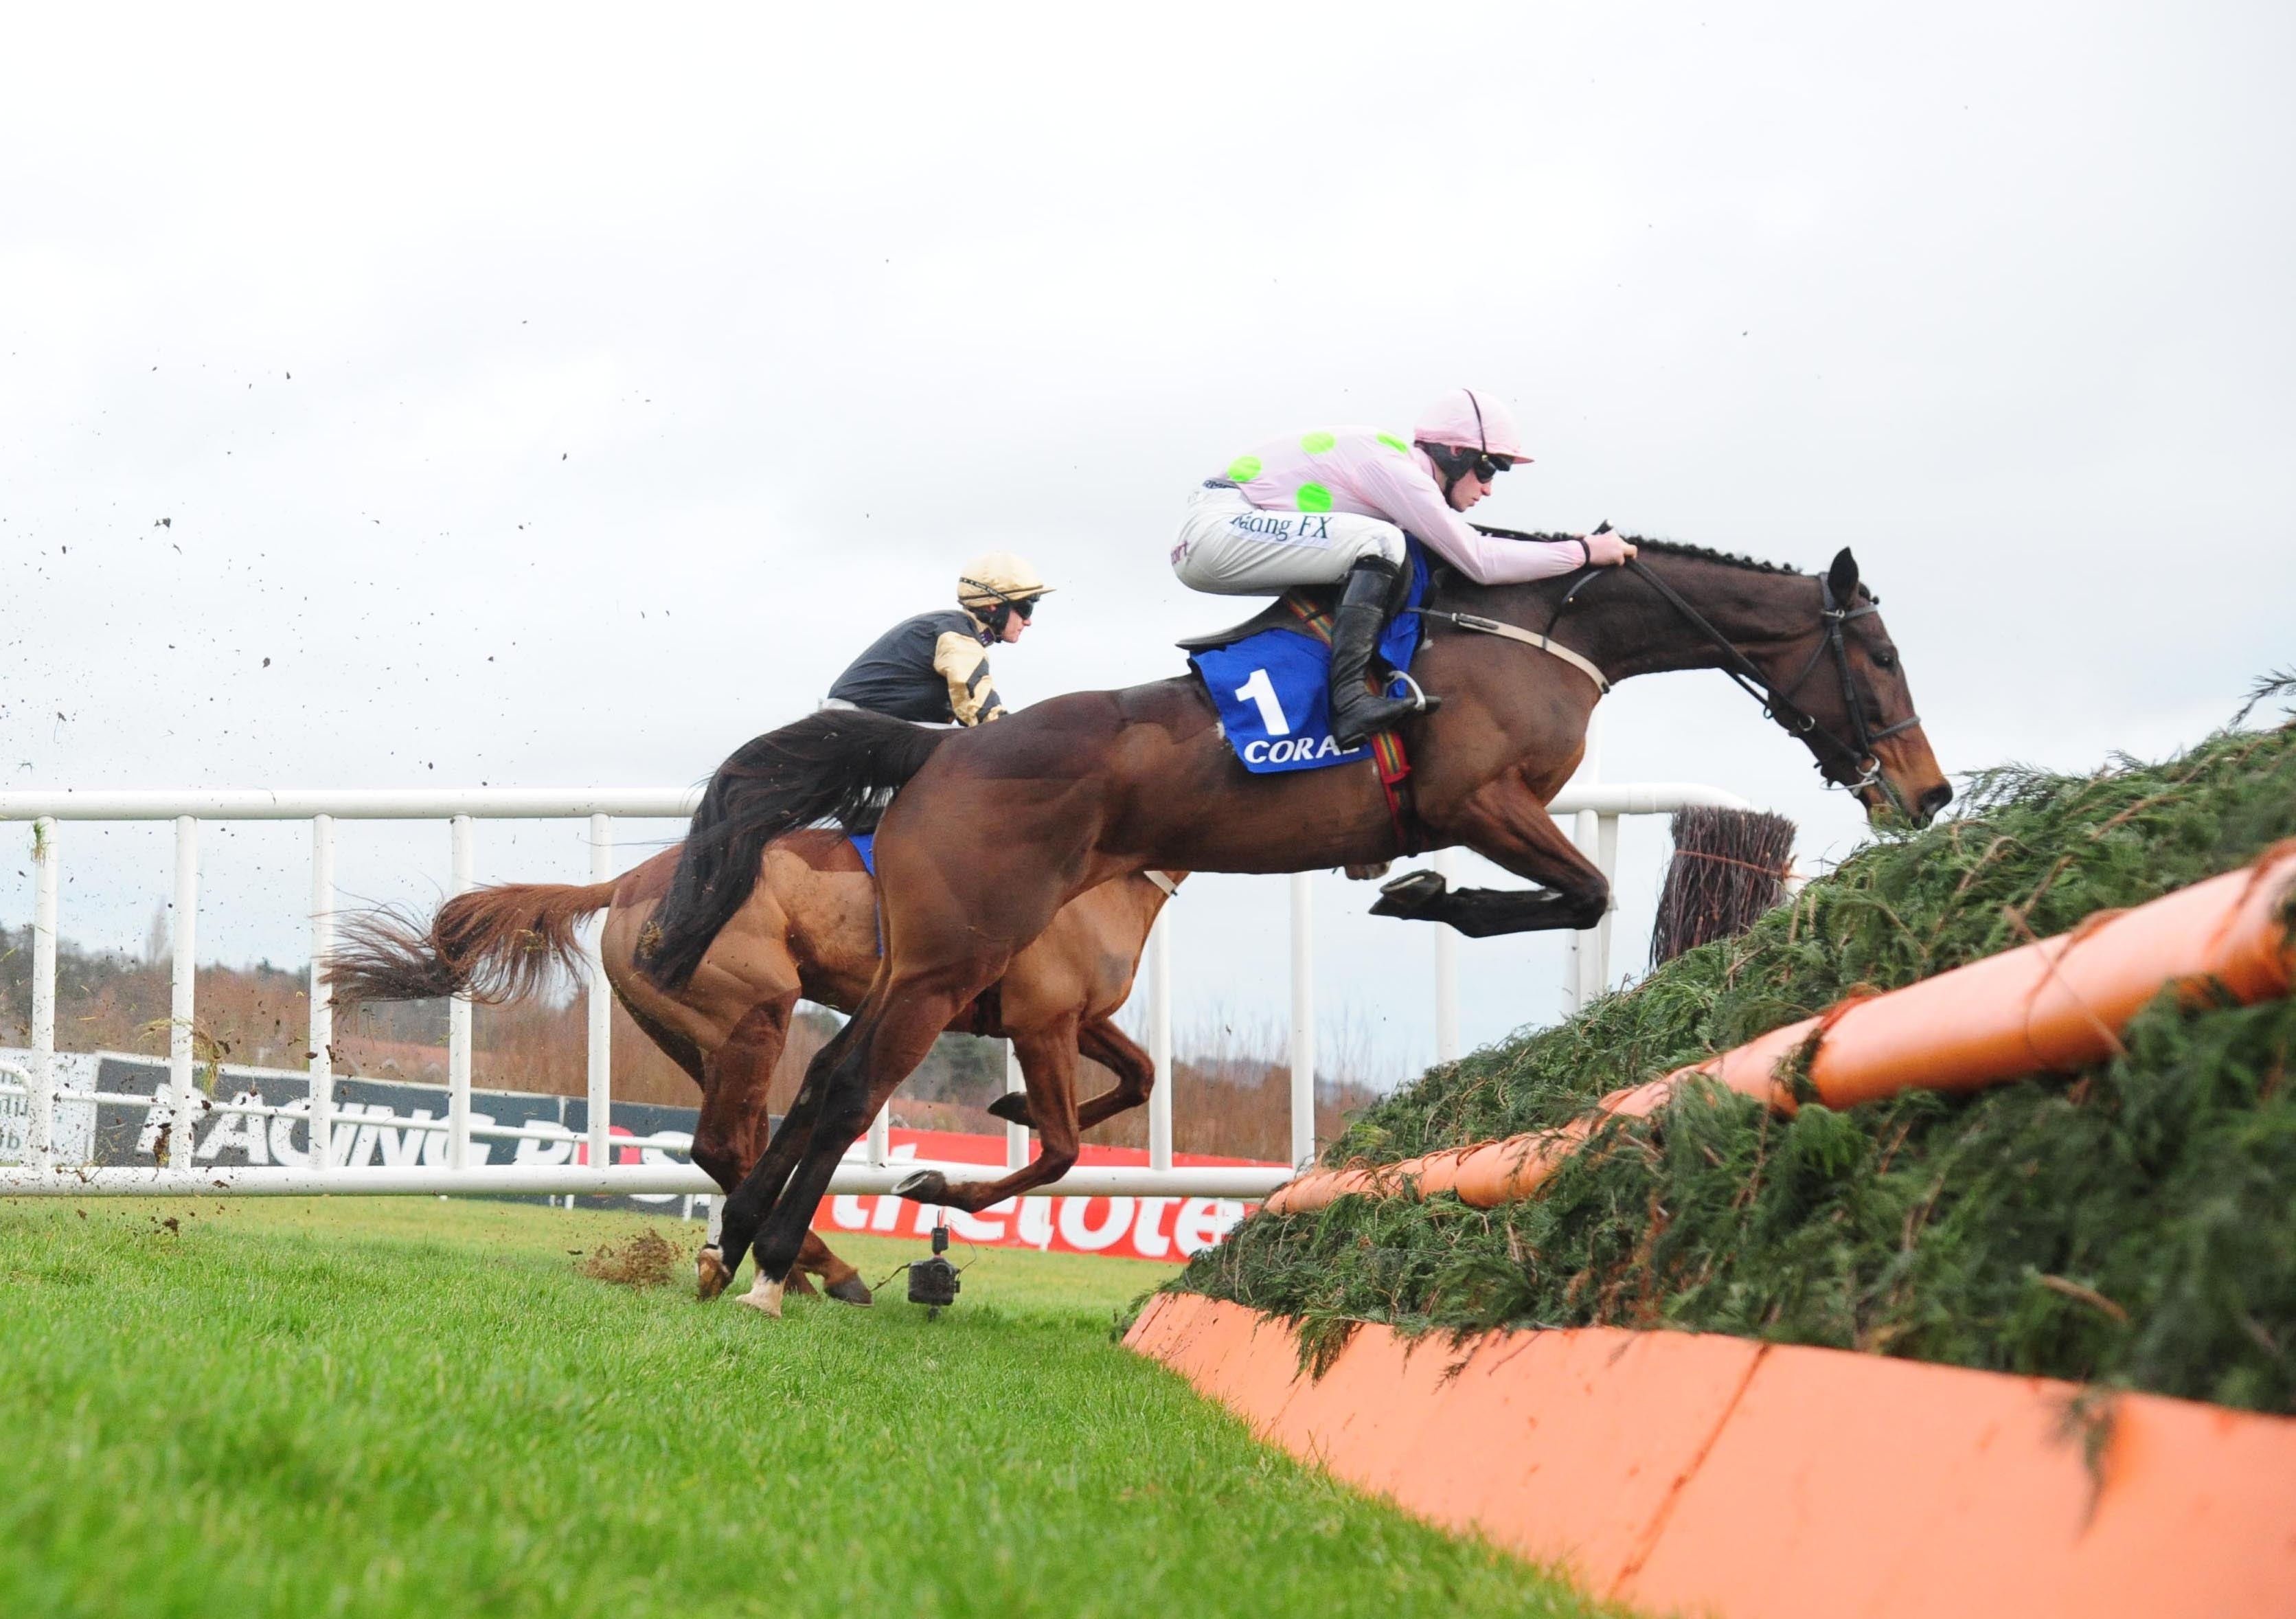 Min has starred at the Dublin Racing Festival for the past two years